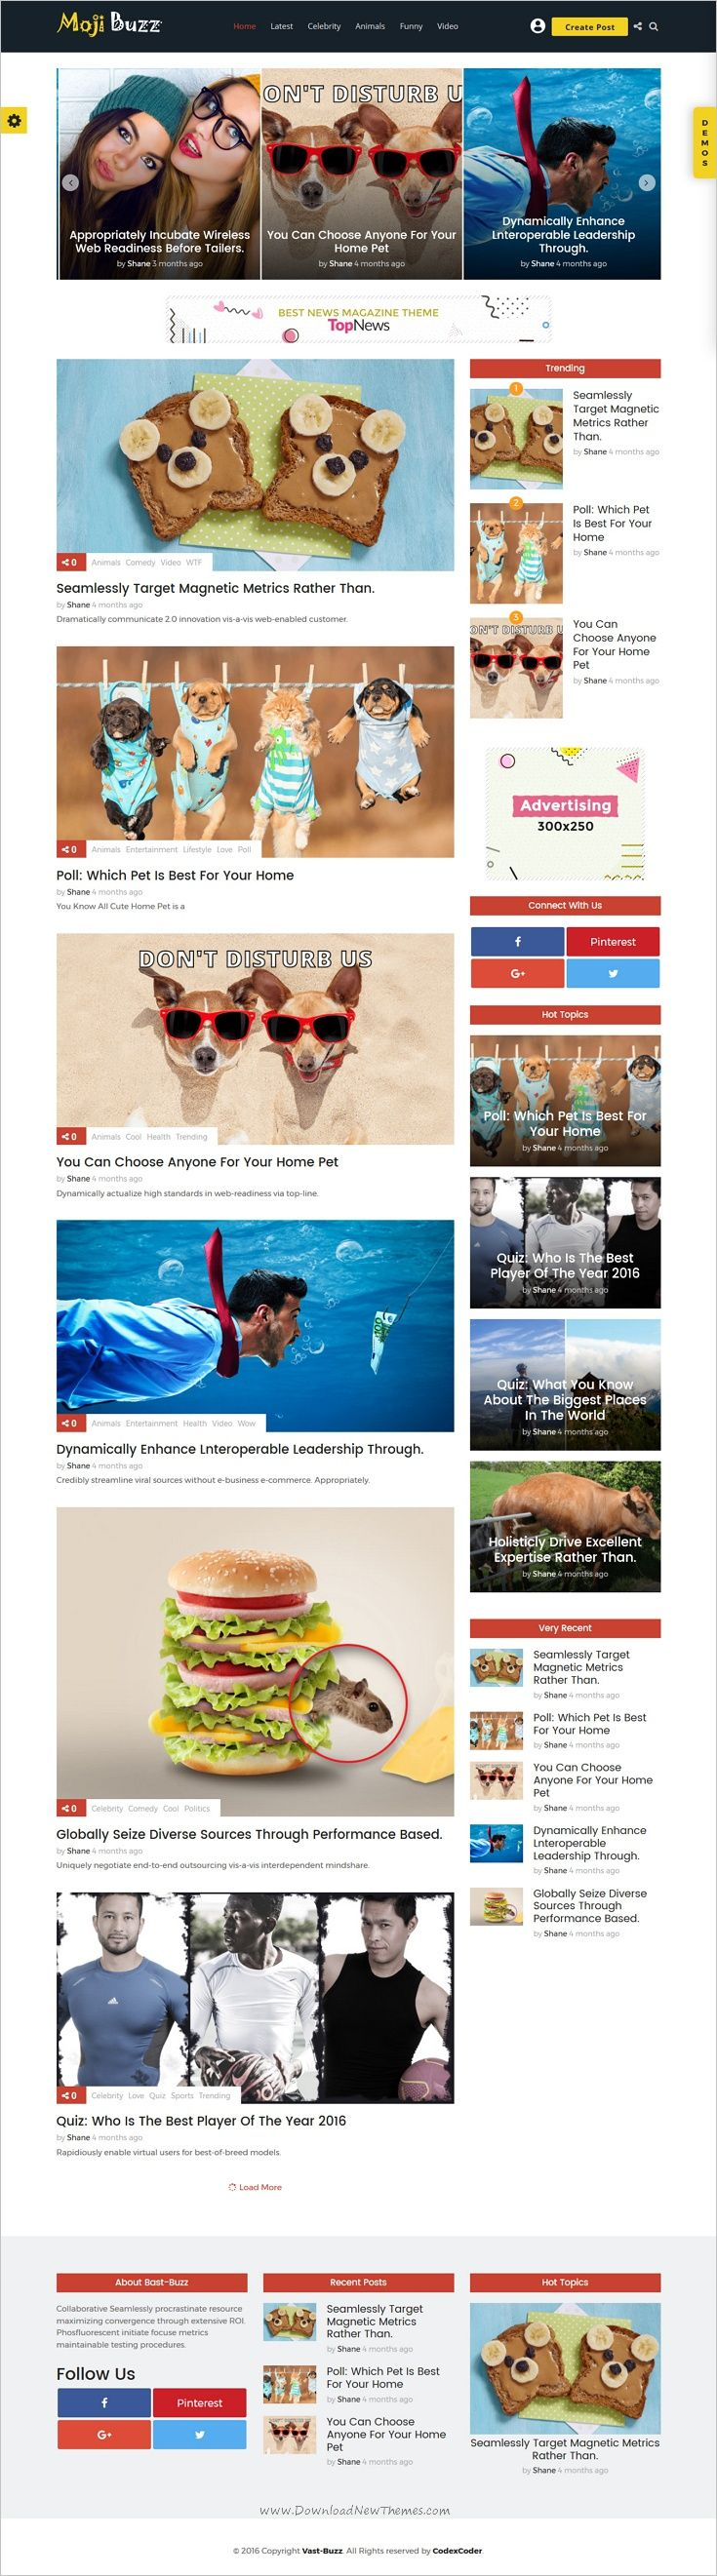 Vast buzz is unique, modern and flat design #WordPress theme for #webdev viral news and magazine websites with 9 homepage layouts to create list, meme, quiz, pool, video, audio, gallery news easily download now➩  https://themeforest.net/item/vast-buzz-viral-buzz-wordpress-theme/19287621?ref=Datasata